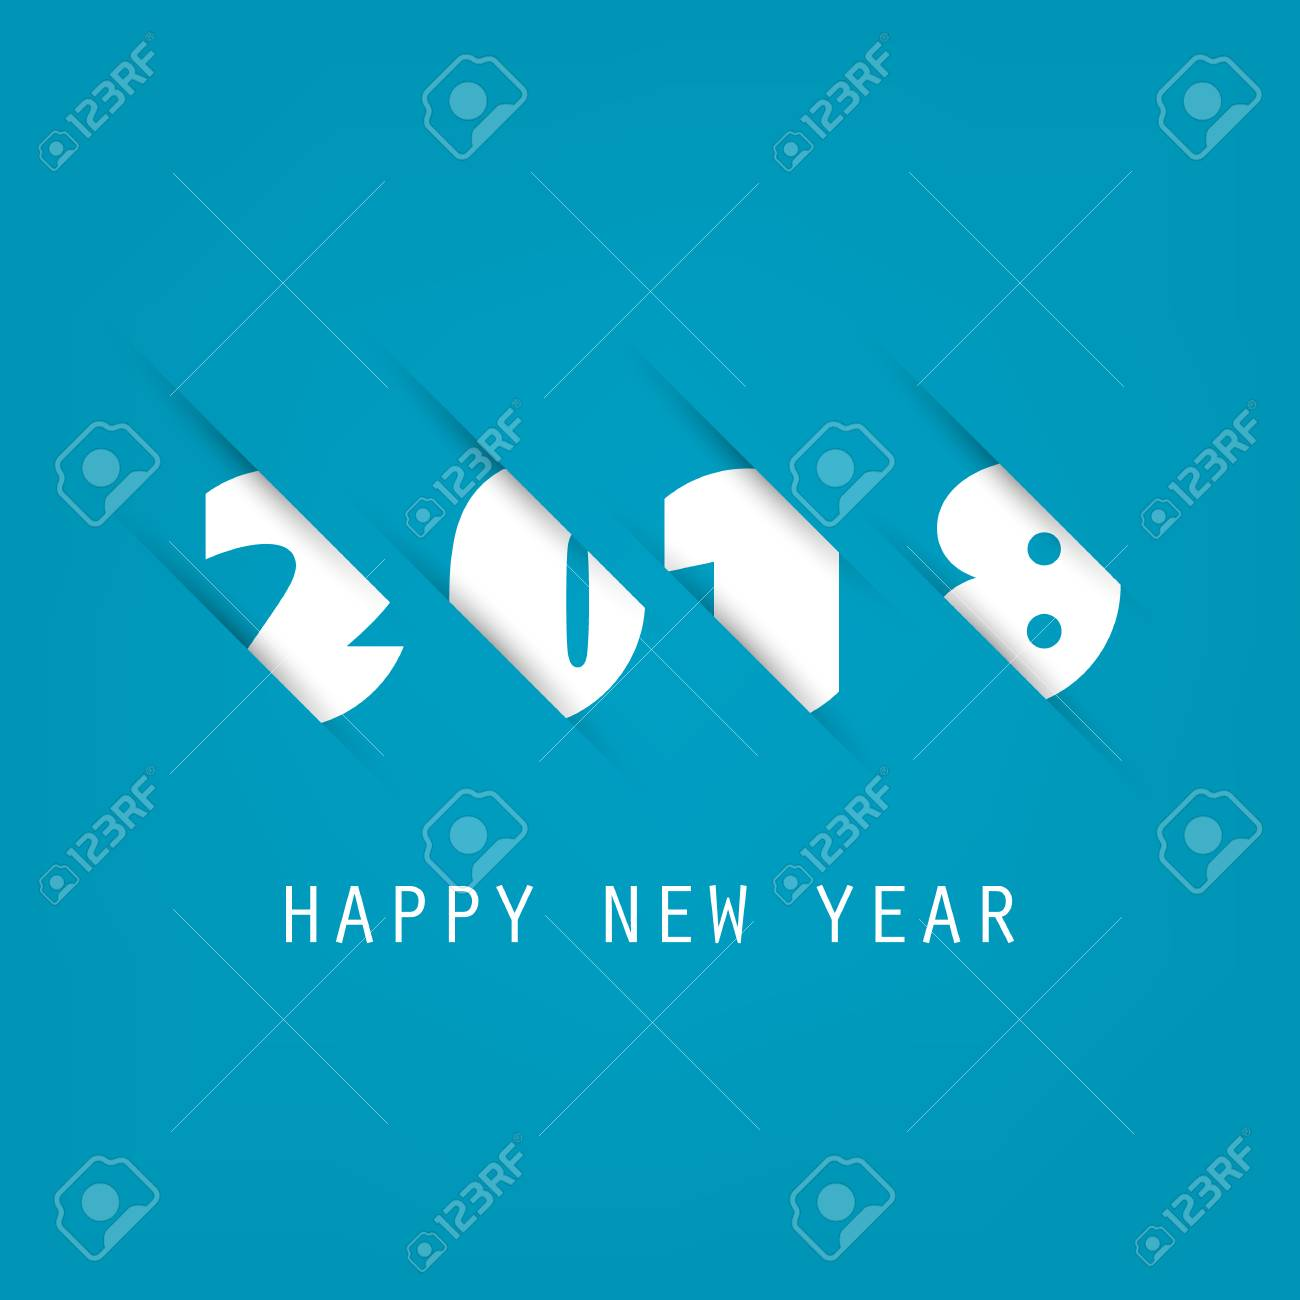 simple blue and white new year card cover or background design template 2018 stock